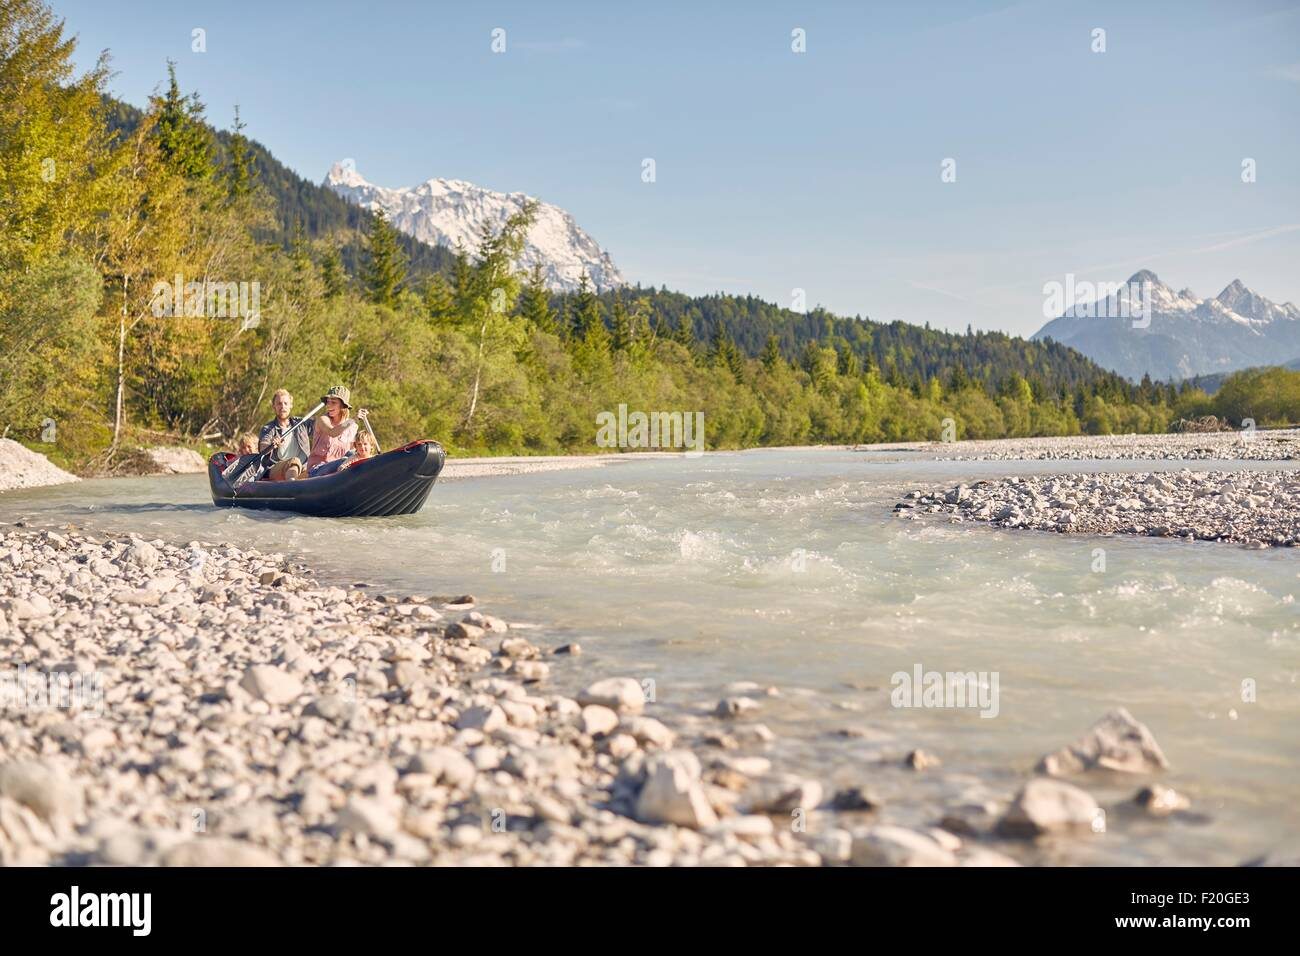 Family using paddles to steer dinghy on water, Wallgau, Bavaria, germany - Stock Image